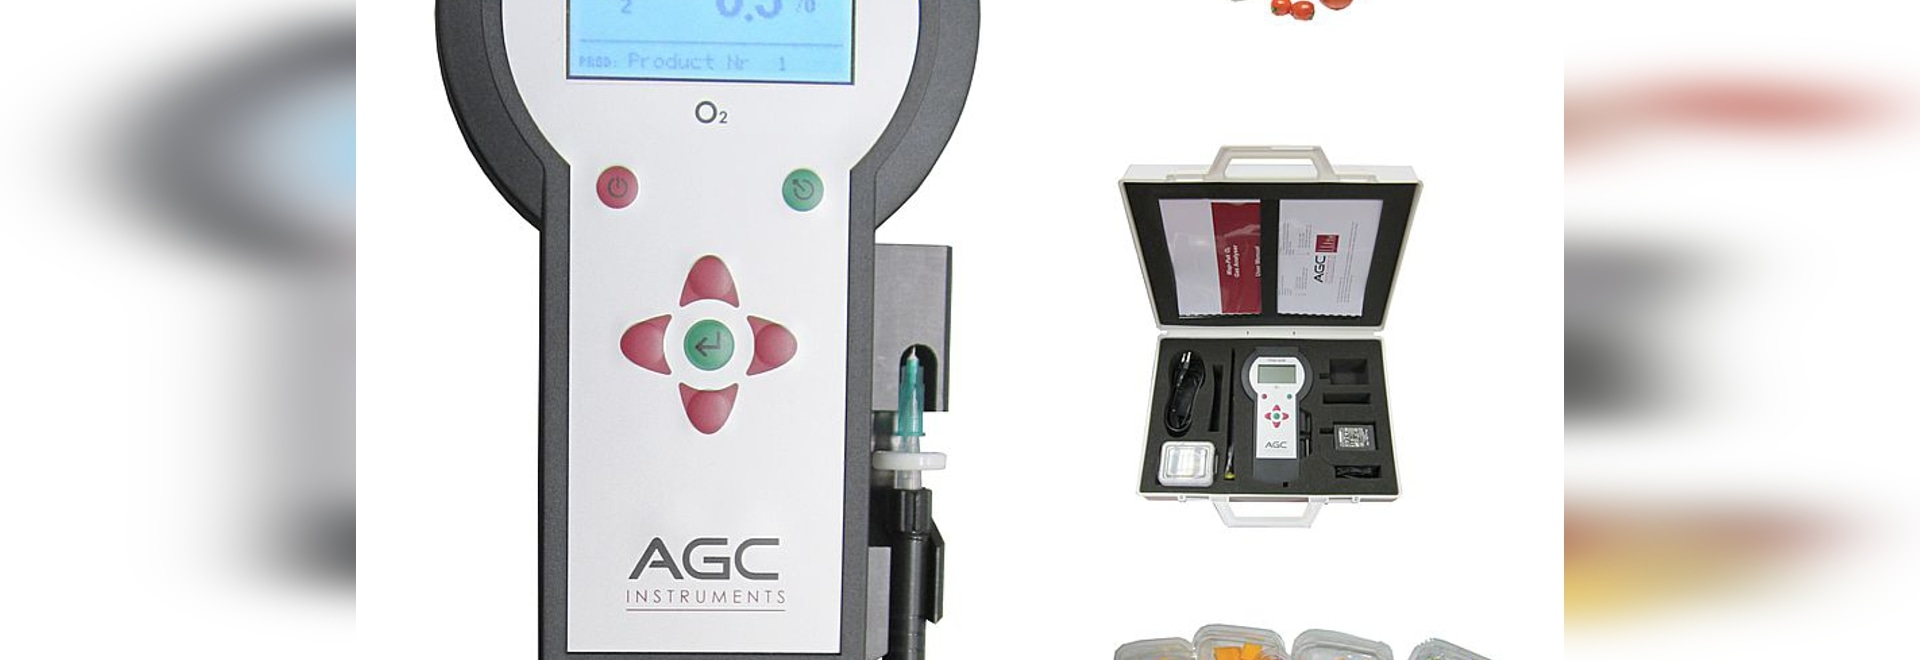 Effortlessly pass your audits with the new ergonomic Map-Pak food packaging gas analyser